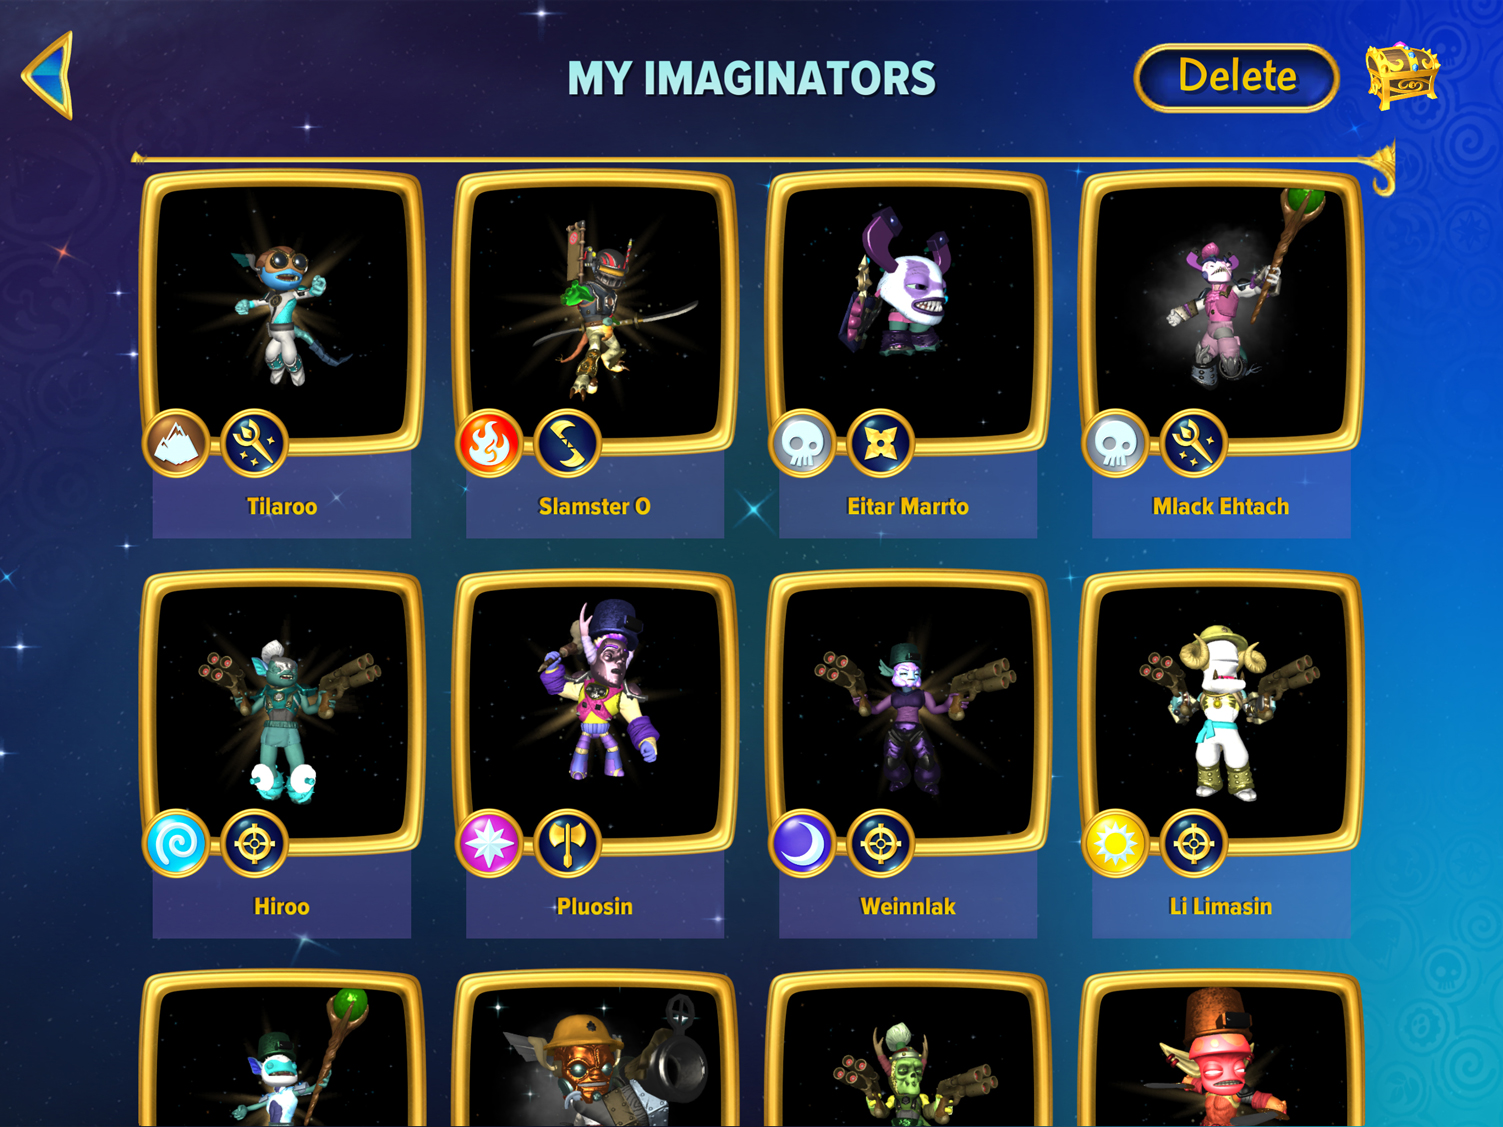 Skylanders Creator App My Imaginators Gallery Example